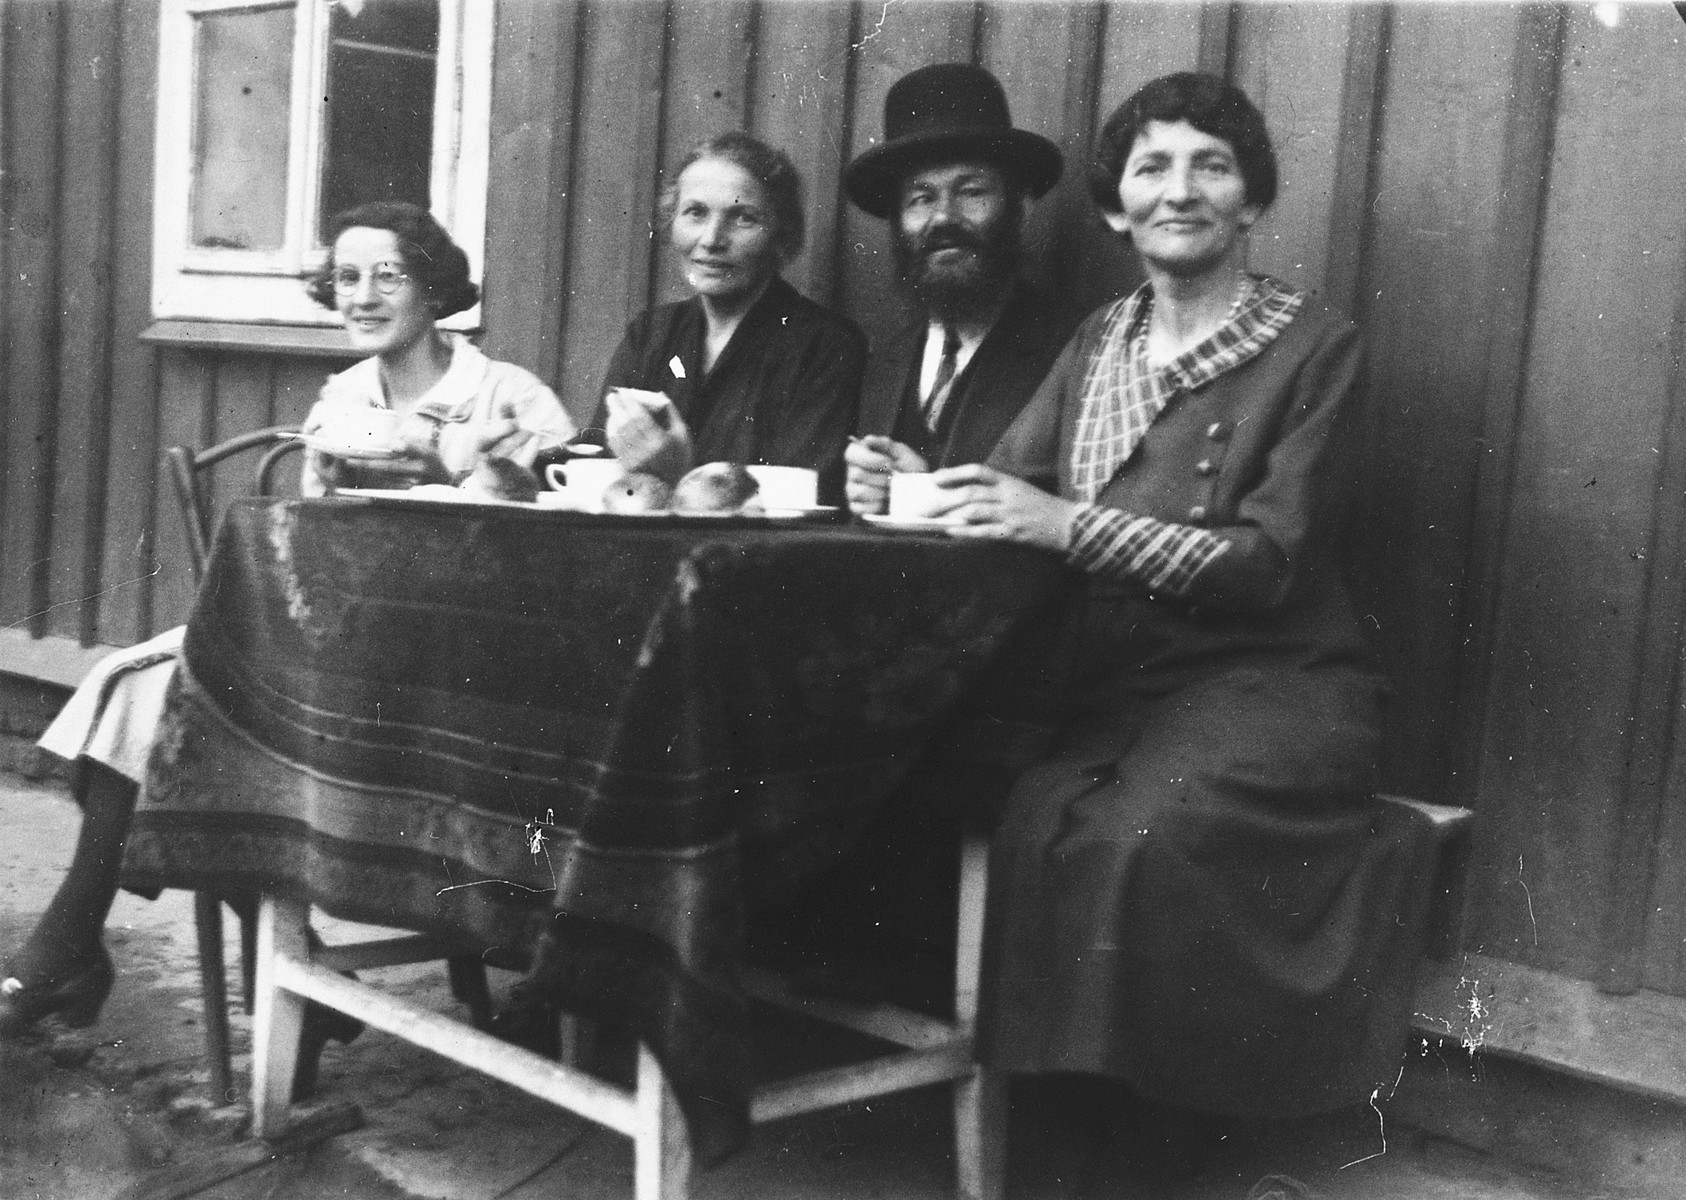 A Jewish family in Pilzno sits outside and enjoys a cup of coffee shortly before the start of the war.  Pictured second from the left is Mariam Silvermann, the donor's maternal grandmother.  Also pictured are her niece, sister and brother-in-law.  Mariam Silvermann was shot and killed in the Rzeszow cemetery together with her daughter Erna Wintergruen-Dunkelblau and her six-year-old son.